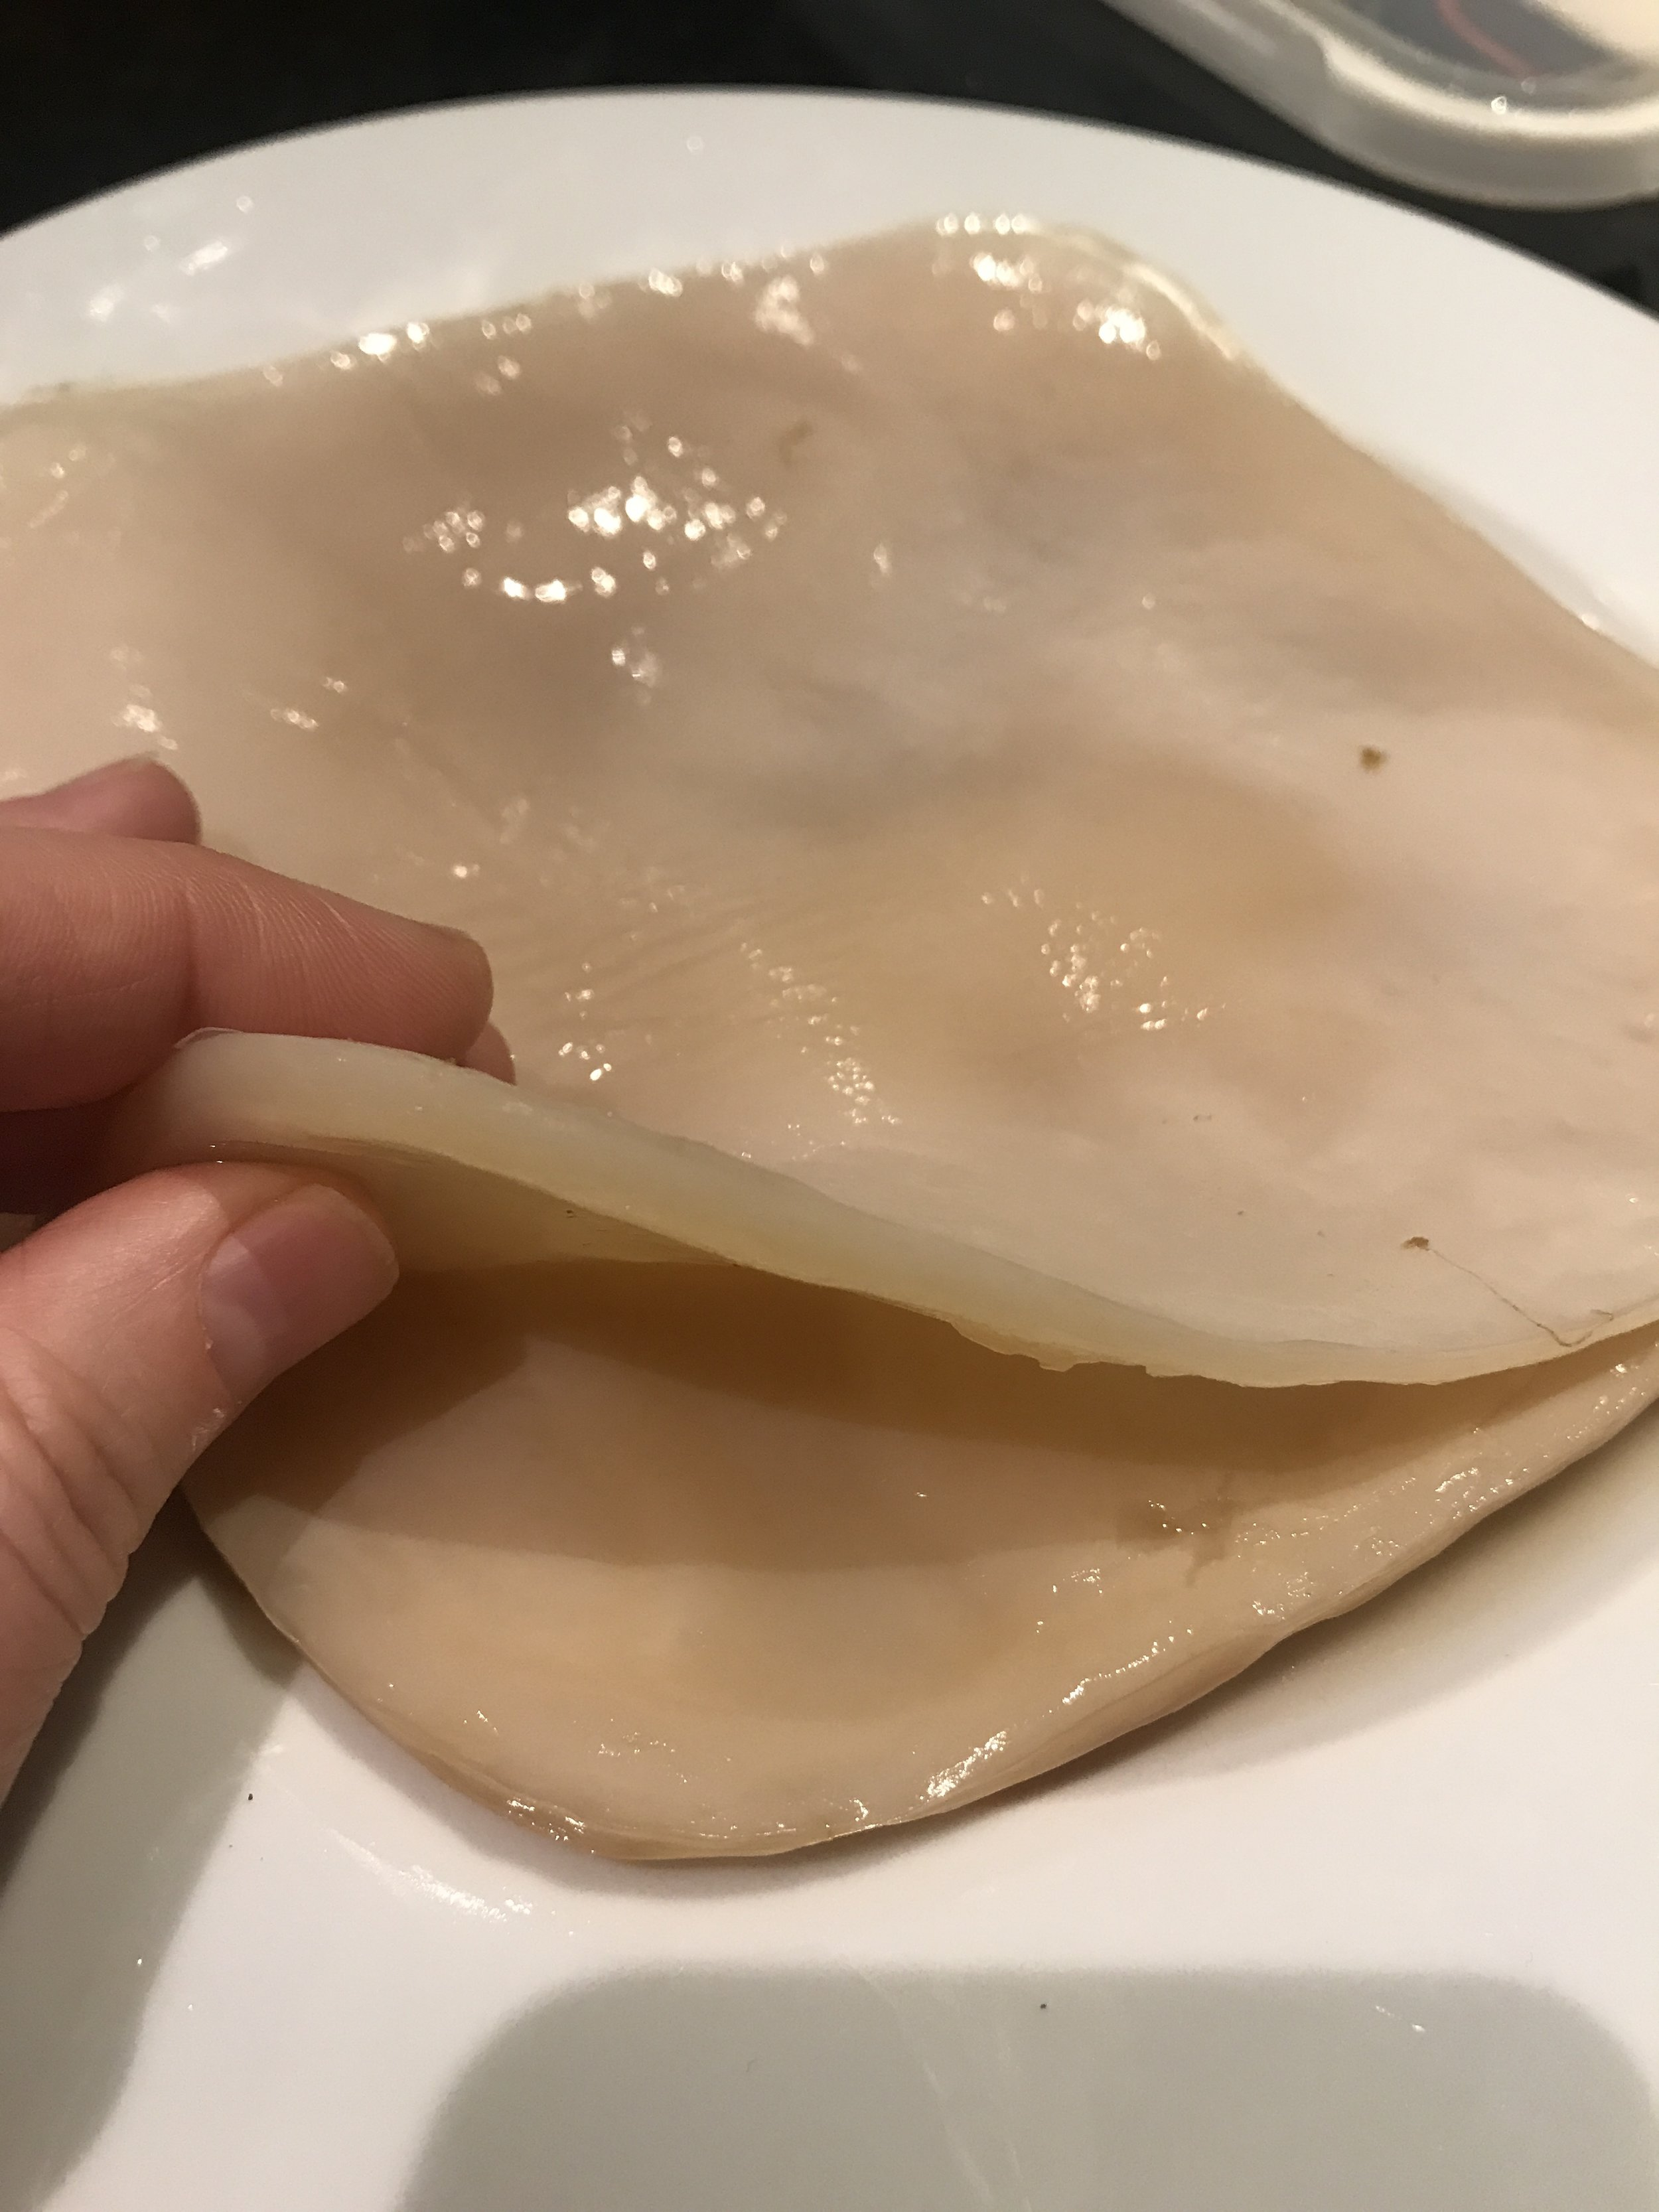 SCOBY - Mother/Child